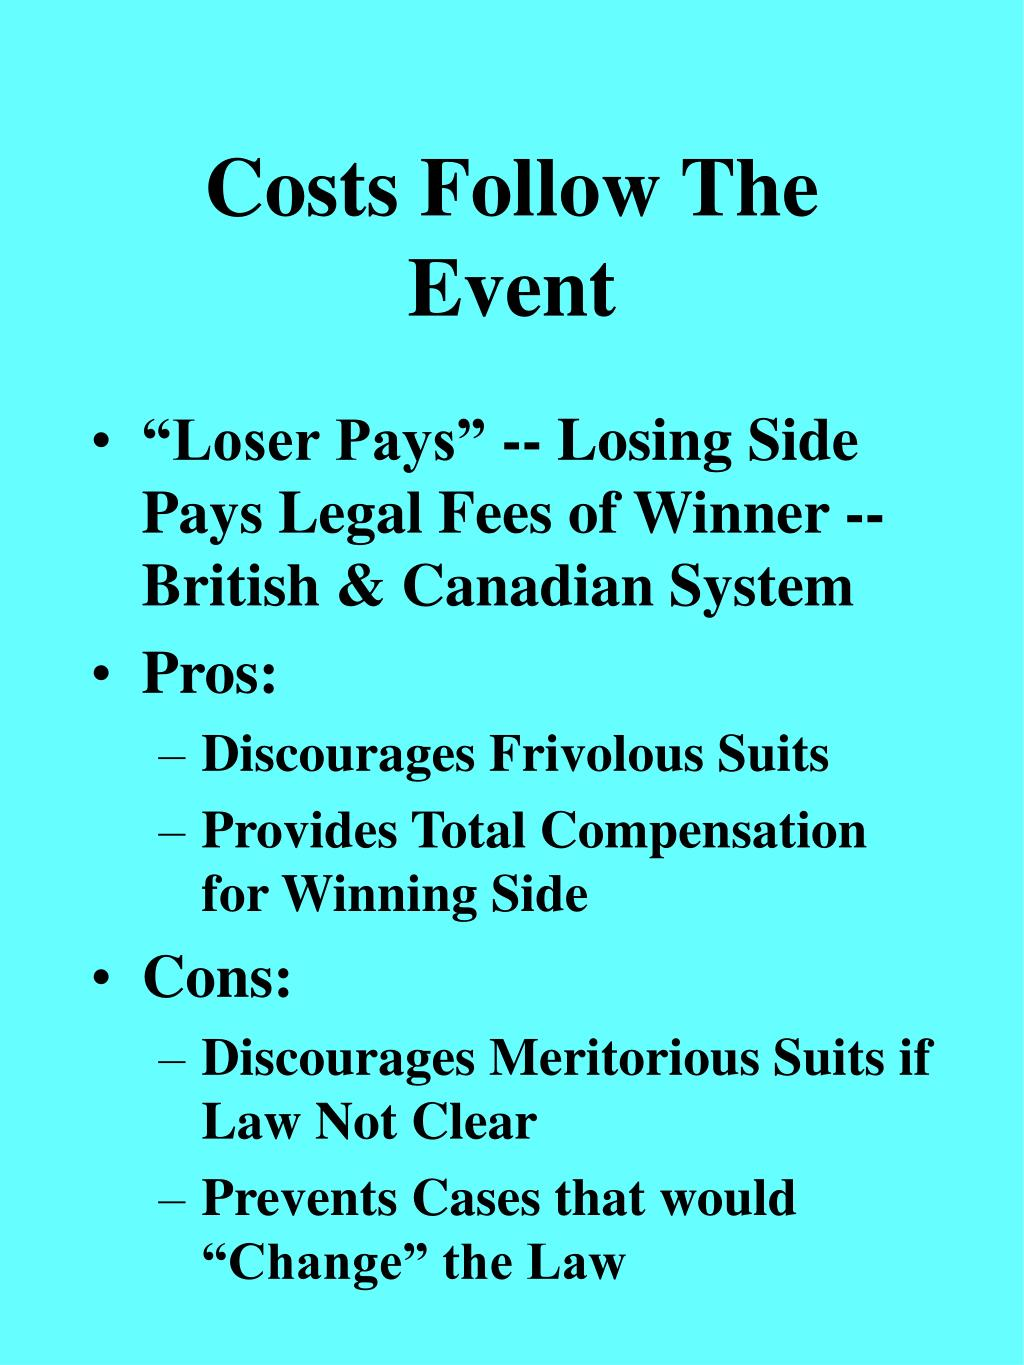 Costs Follow The Event